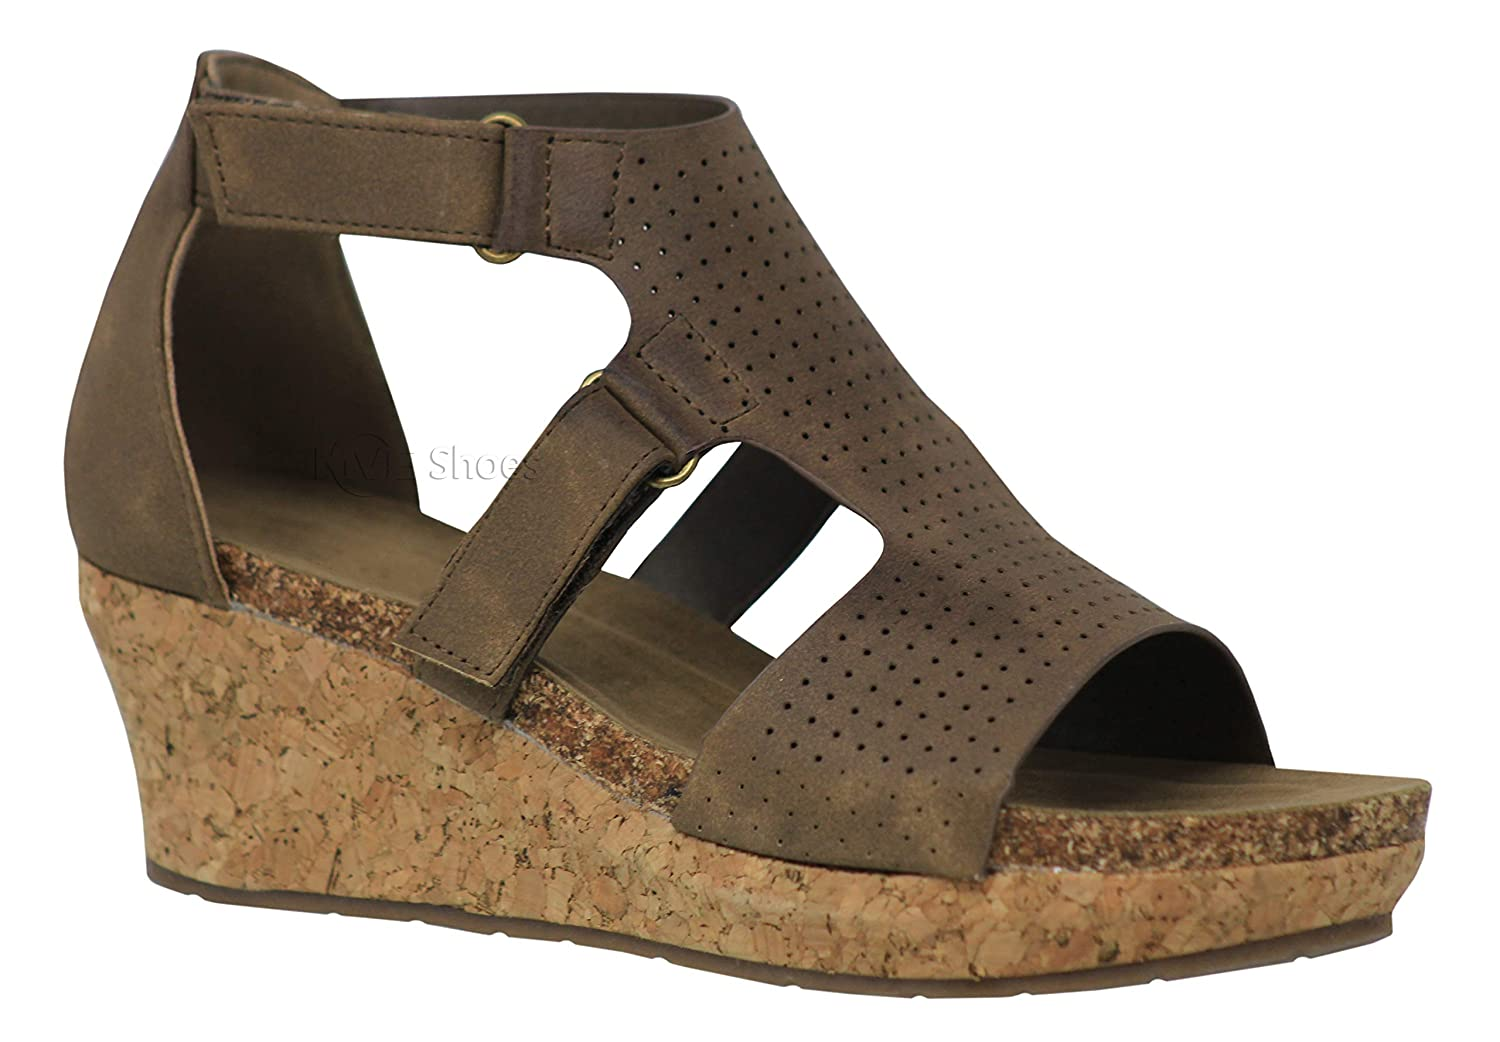 Taupe5c MVE shoes Women Cut Out Open Toe Wedges-Comfy Sandals